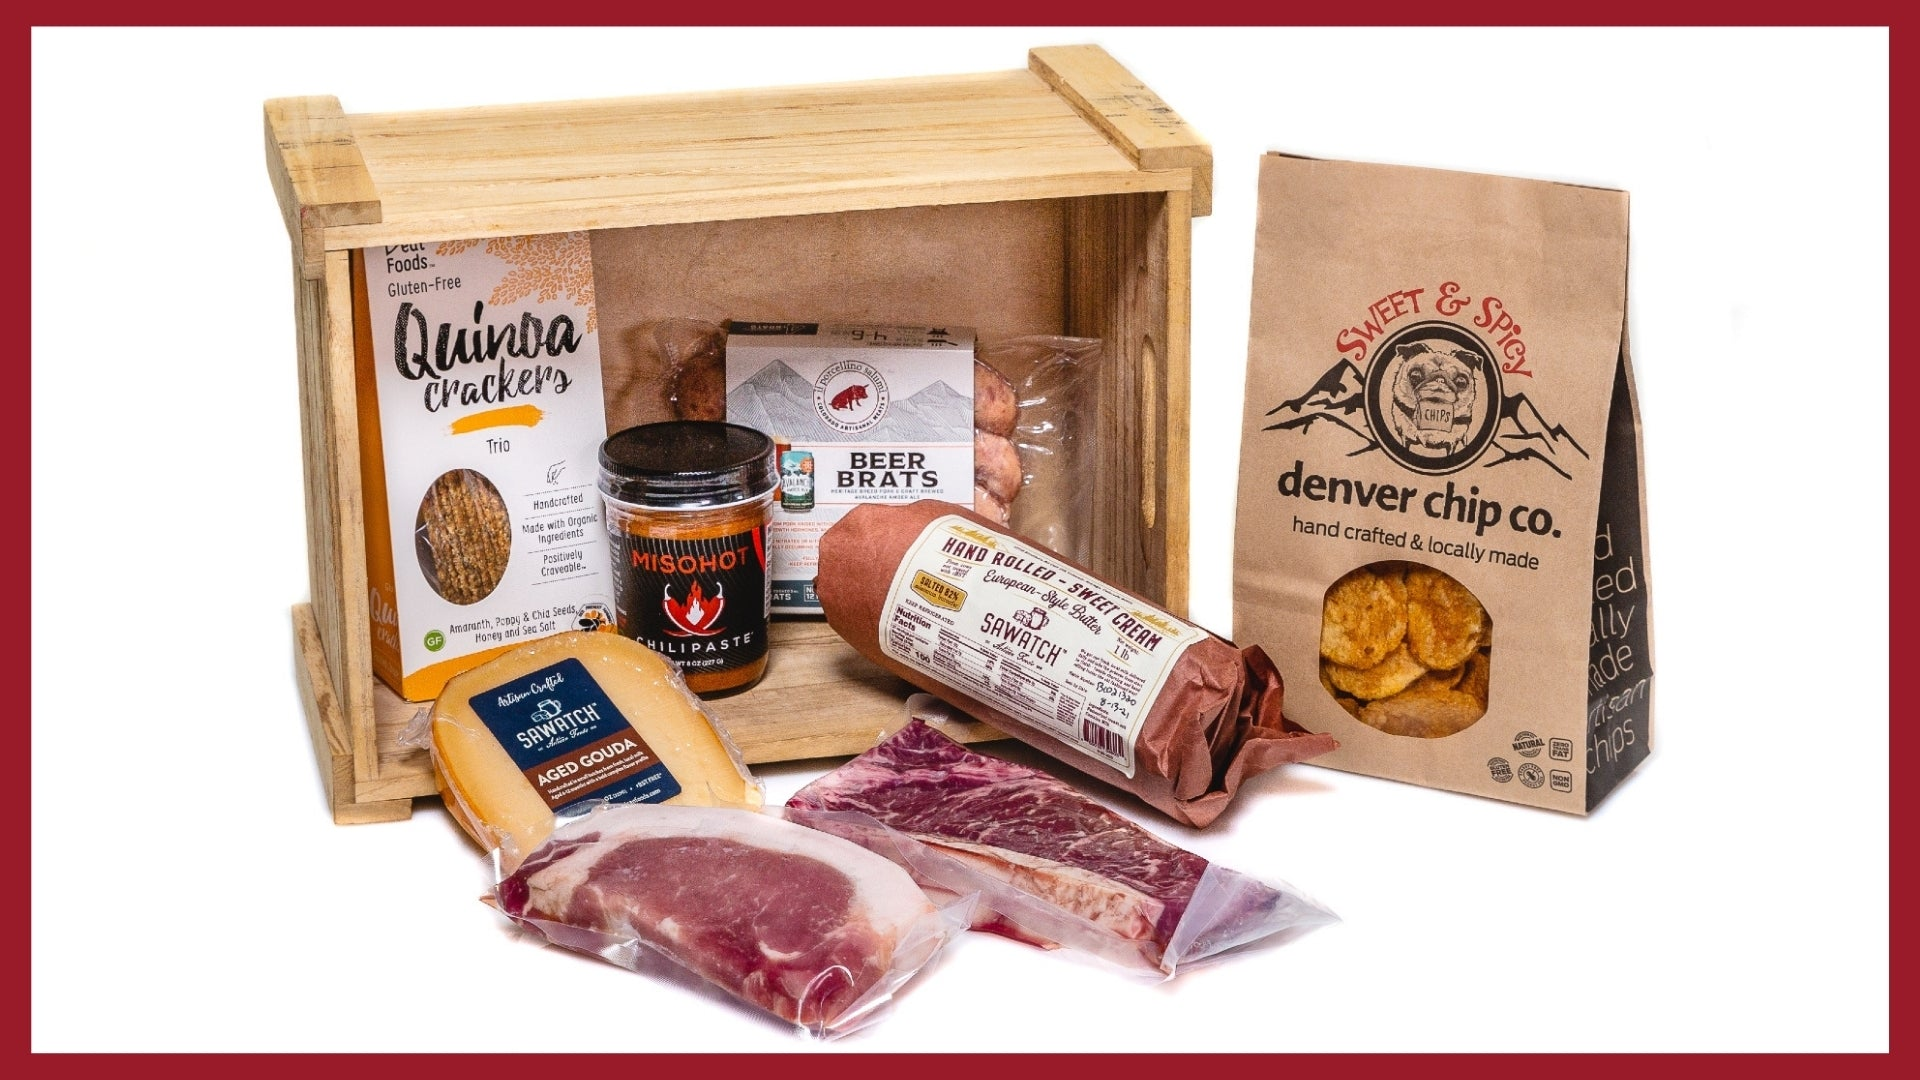 A picture of products in a CSA box from il porcellino salumi which includes whole muscle meat, crackers, salami and more.